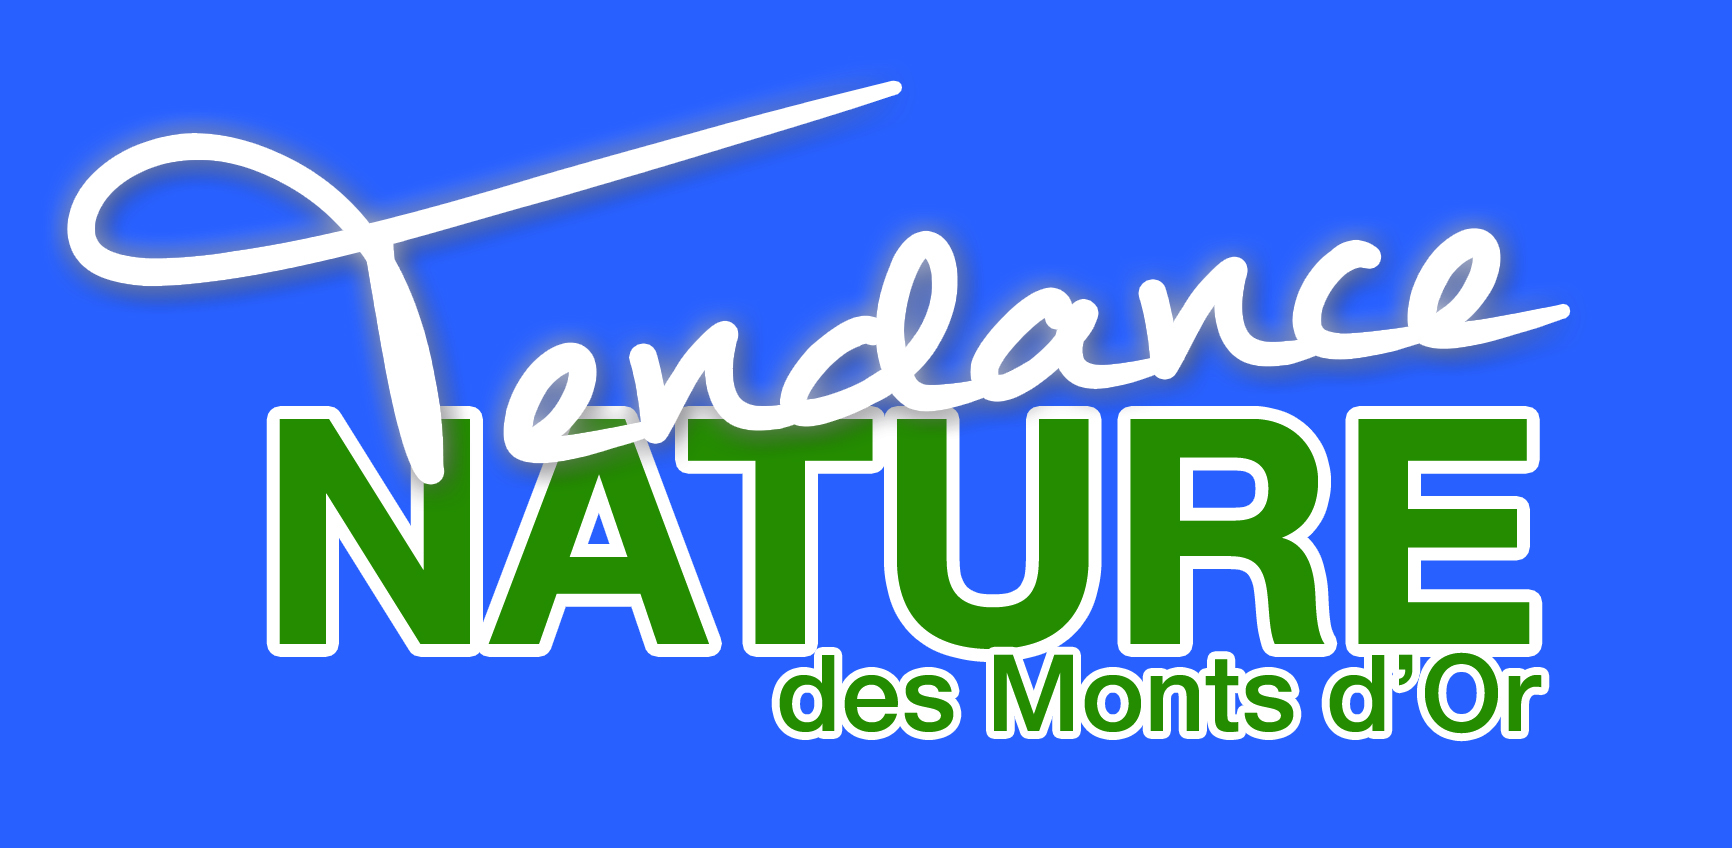 Salon Tendance Nature Salon Tendance Nature Des Monts D 39or 2018